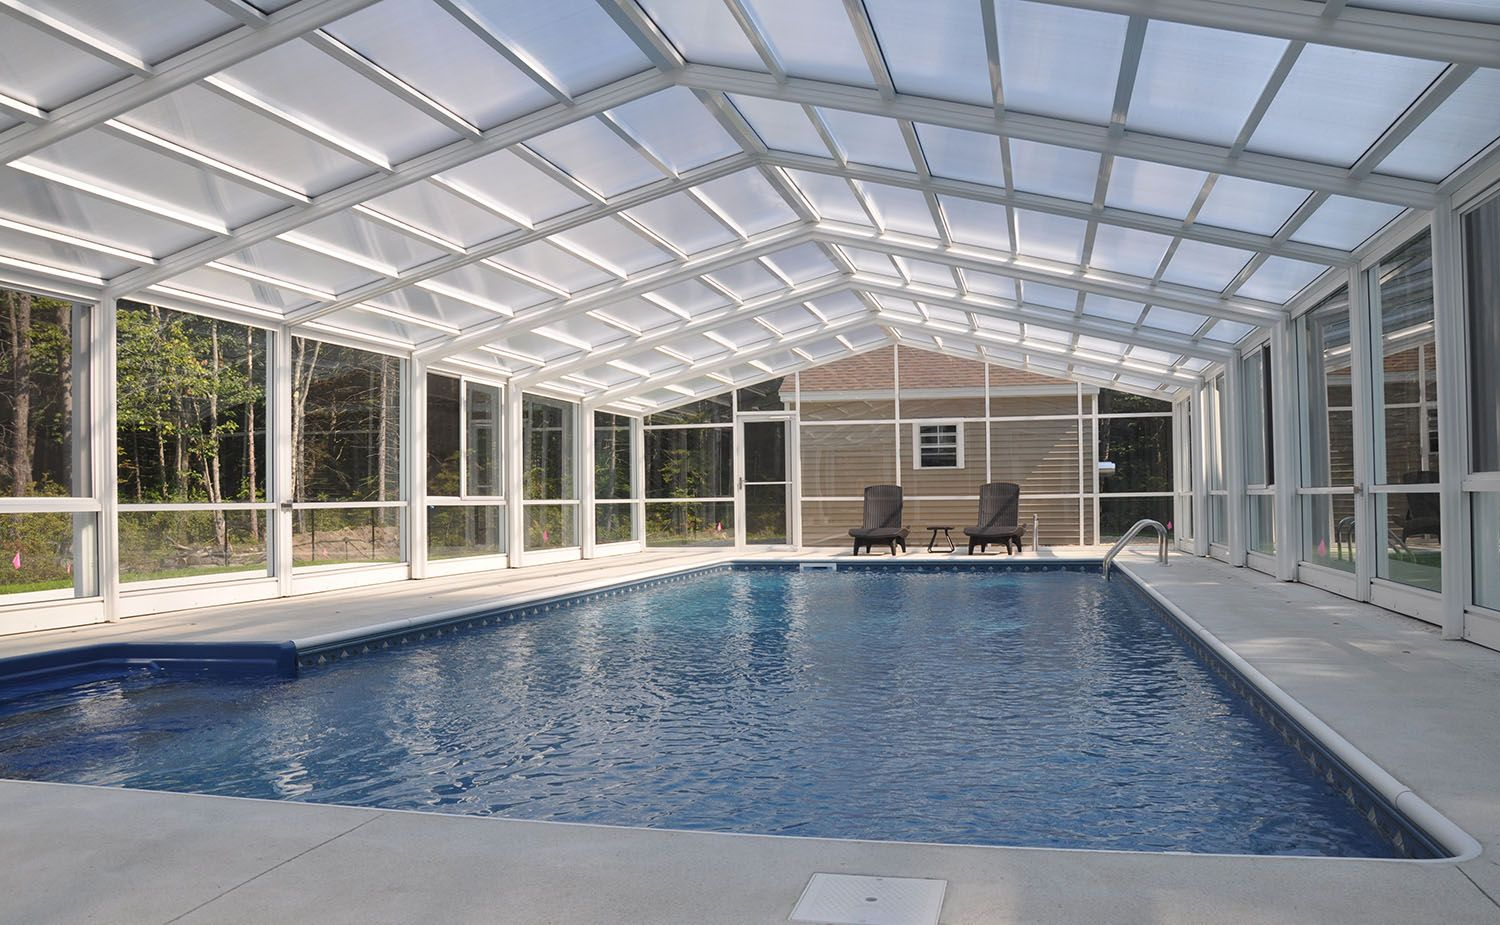 Maine Pool Enclosure Manufactured By Roll A Cover Creates A Year Round Swimming Experience Retractable So Pool Enclosures Endless Pool Backyard Pool Designs